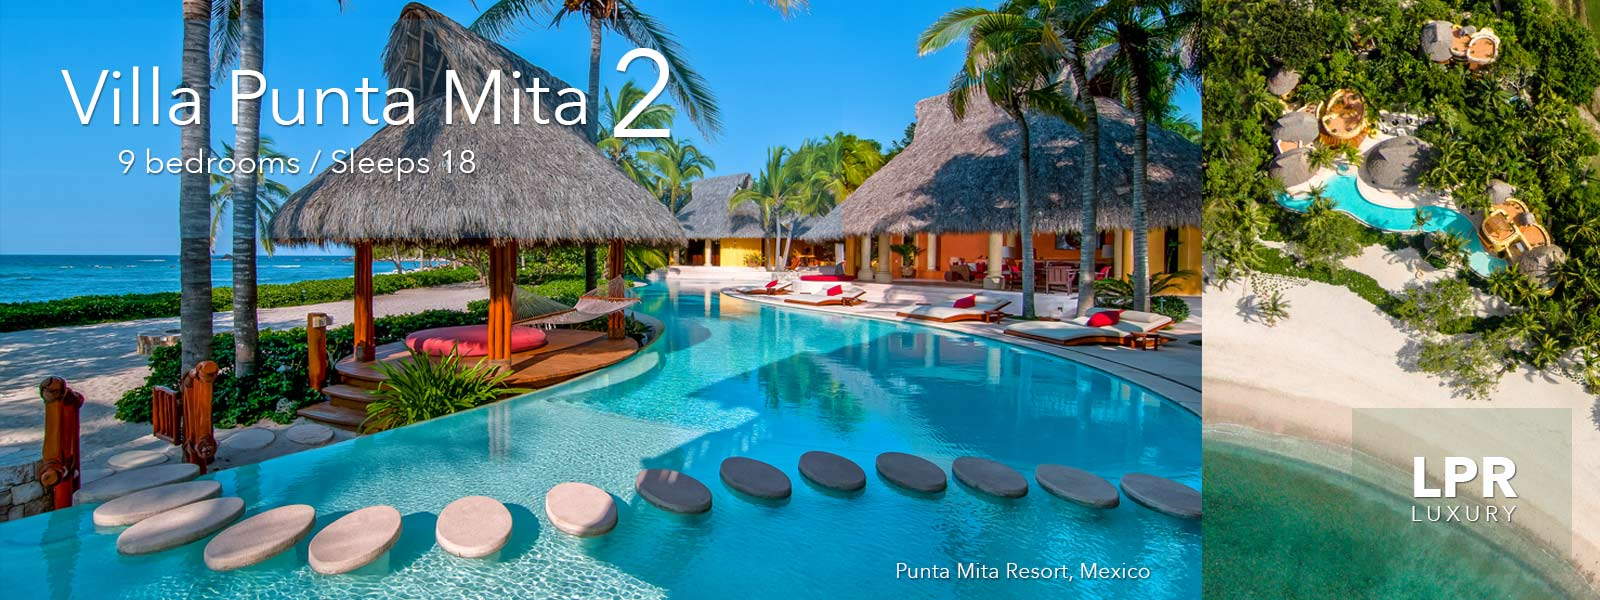 Villa Punta Mita 2 - Luxury Punta de Mita Resort Vacation Rentals Villas, Mexico